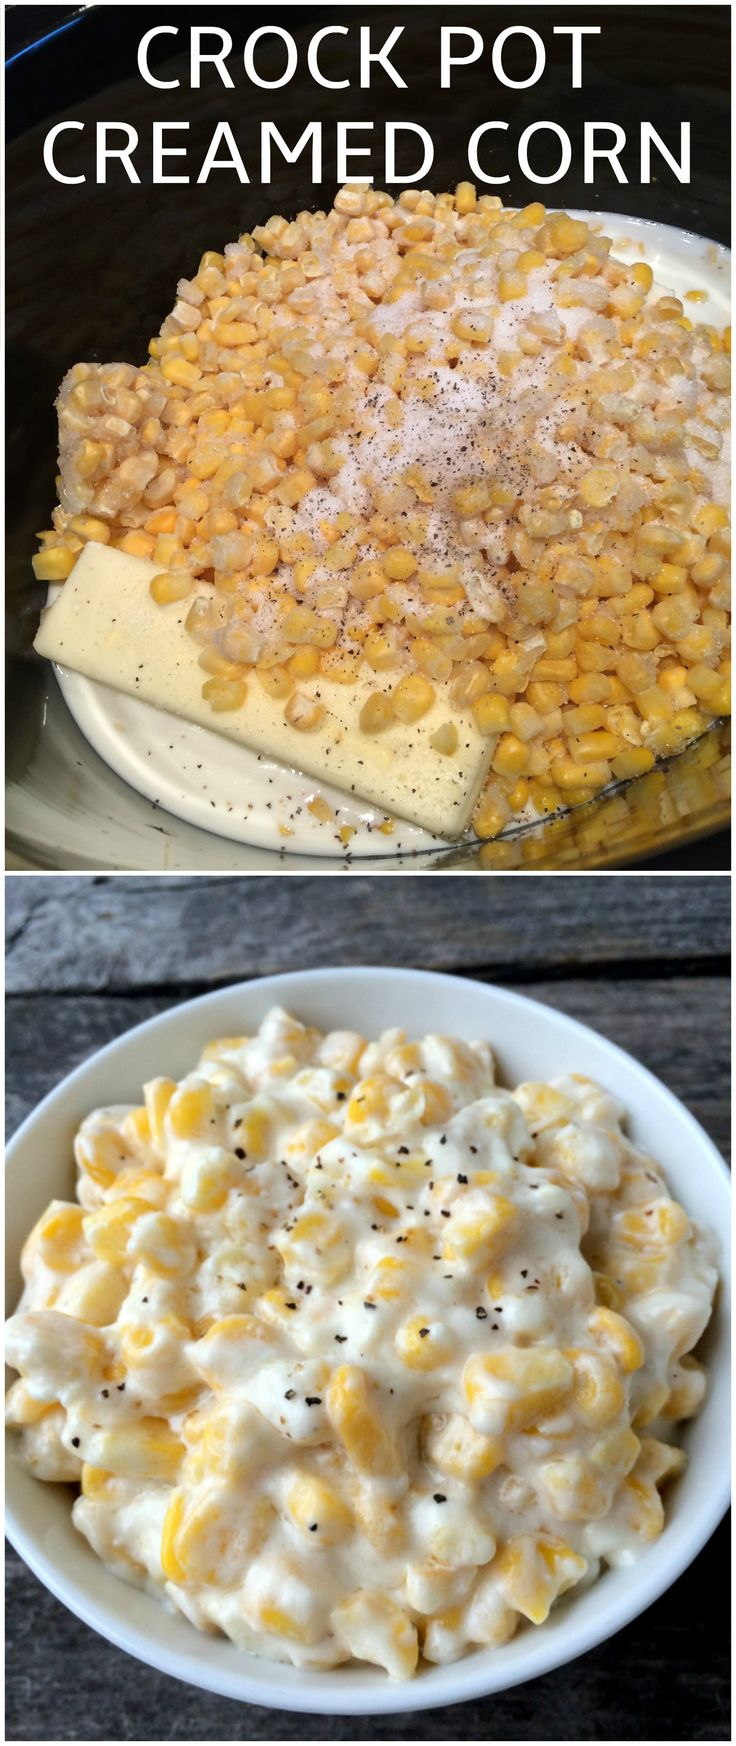 Crock Pot Cream Corn